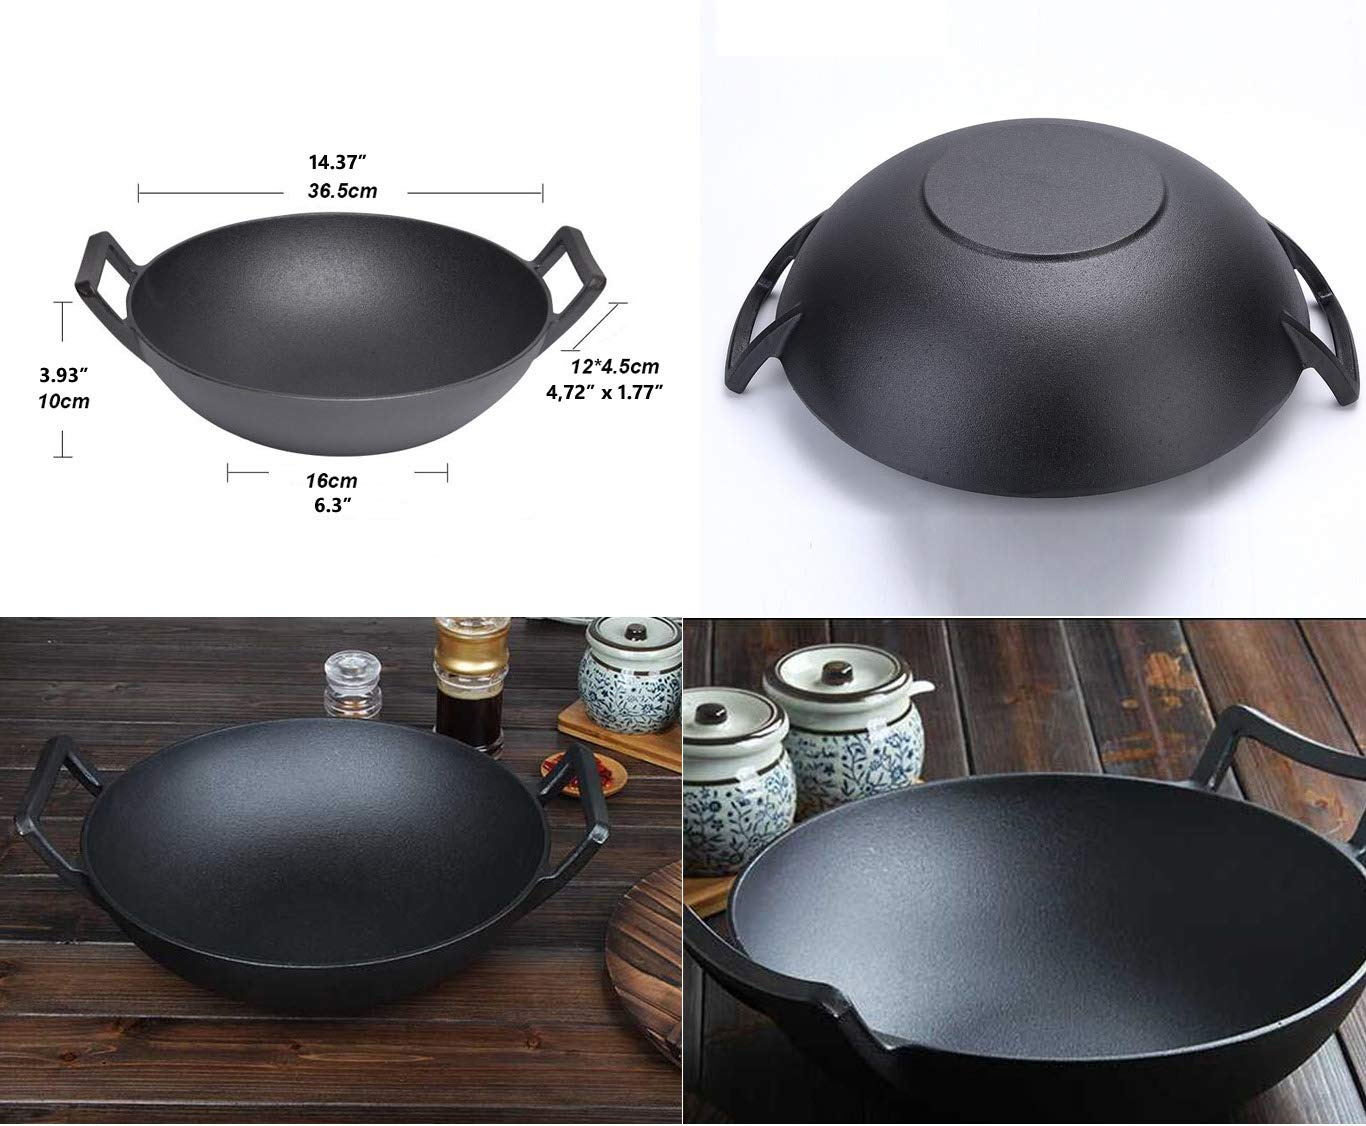 14-Inch Cast Iron Wok Set (Pre-Seasoned), Glass Lid & Silicone Hot Handle Holders by Crucible Cookware (Image #3)